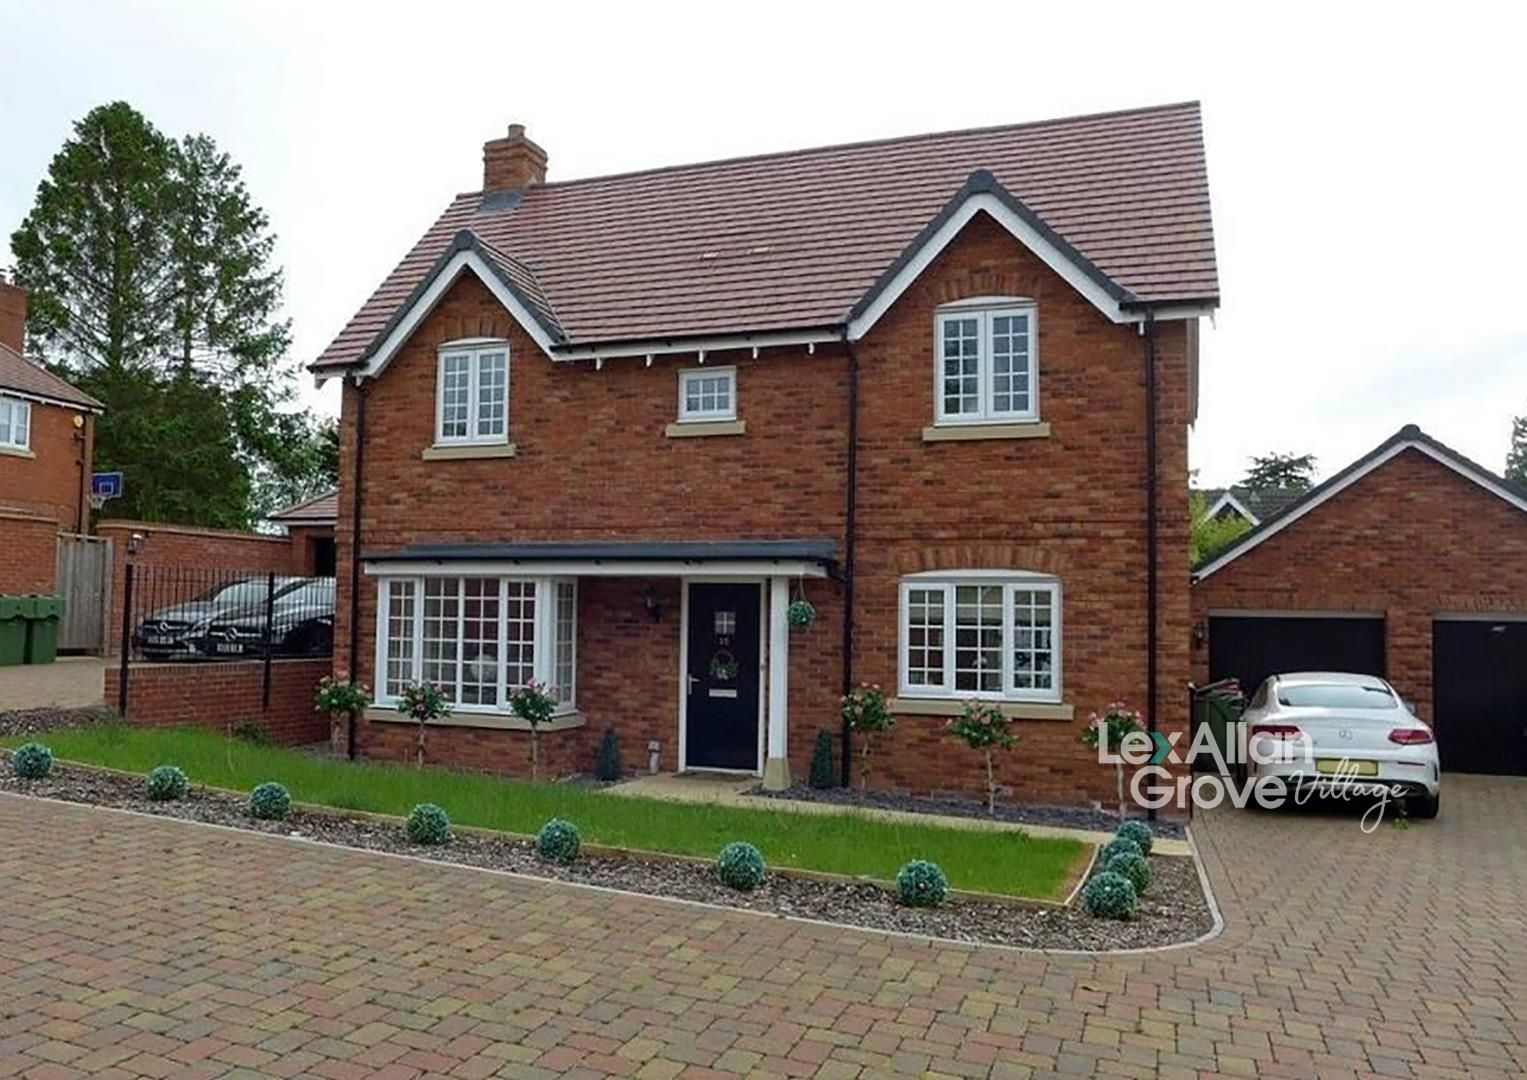 3 bed detached for sale in Hagley 1